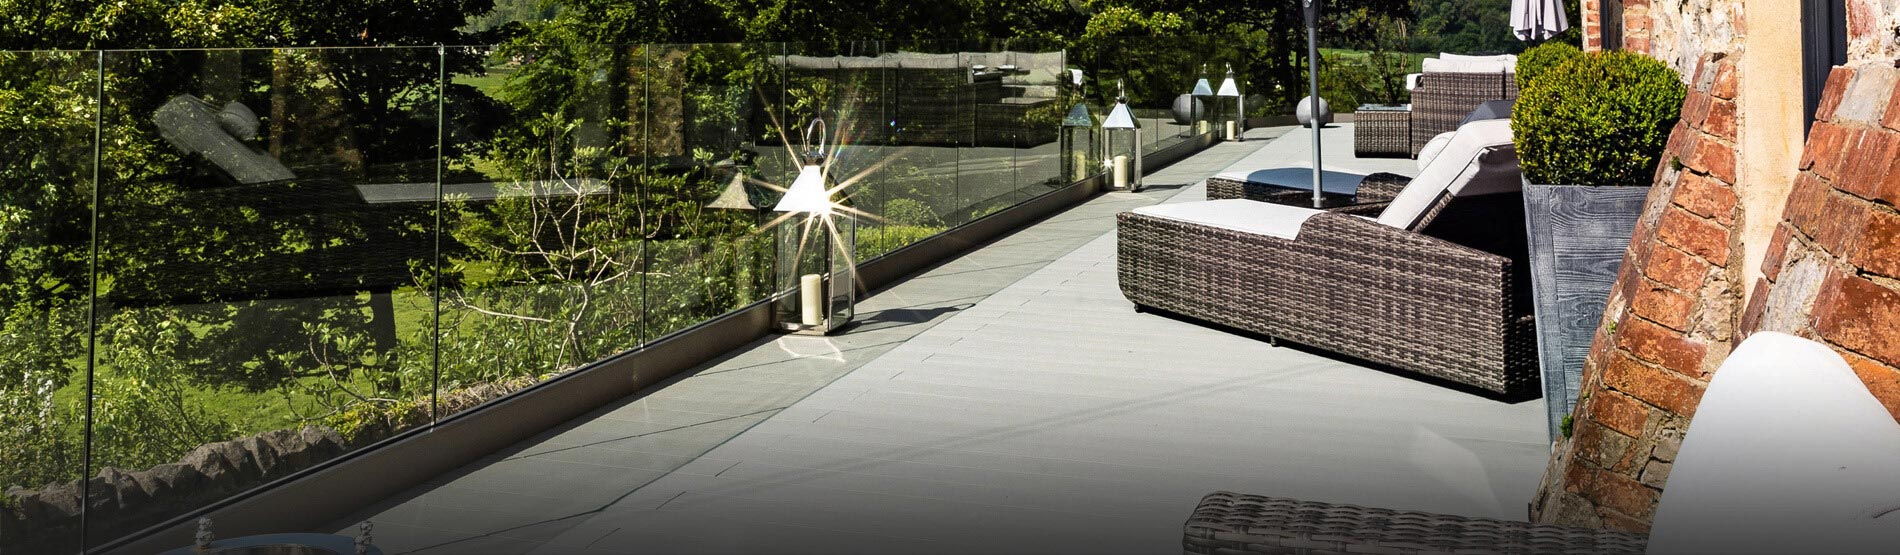 Does Composite Decking Fade